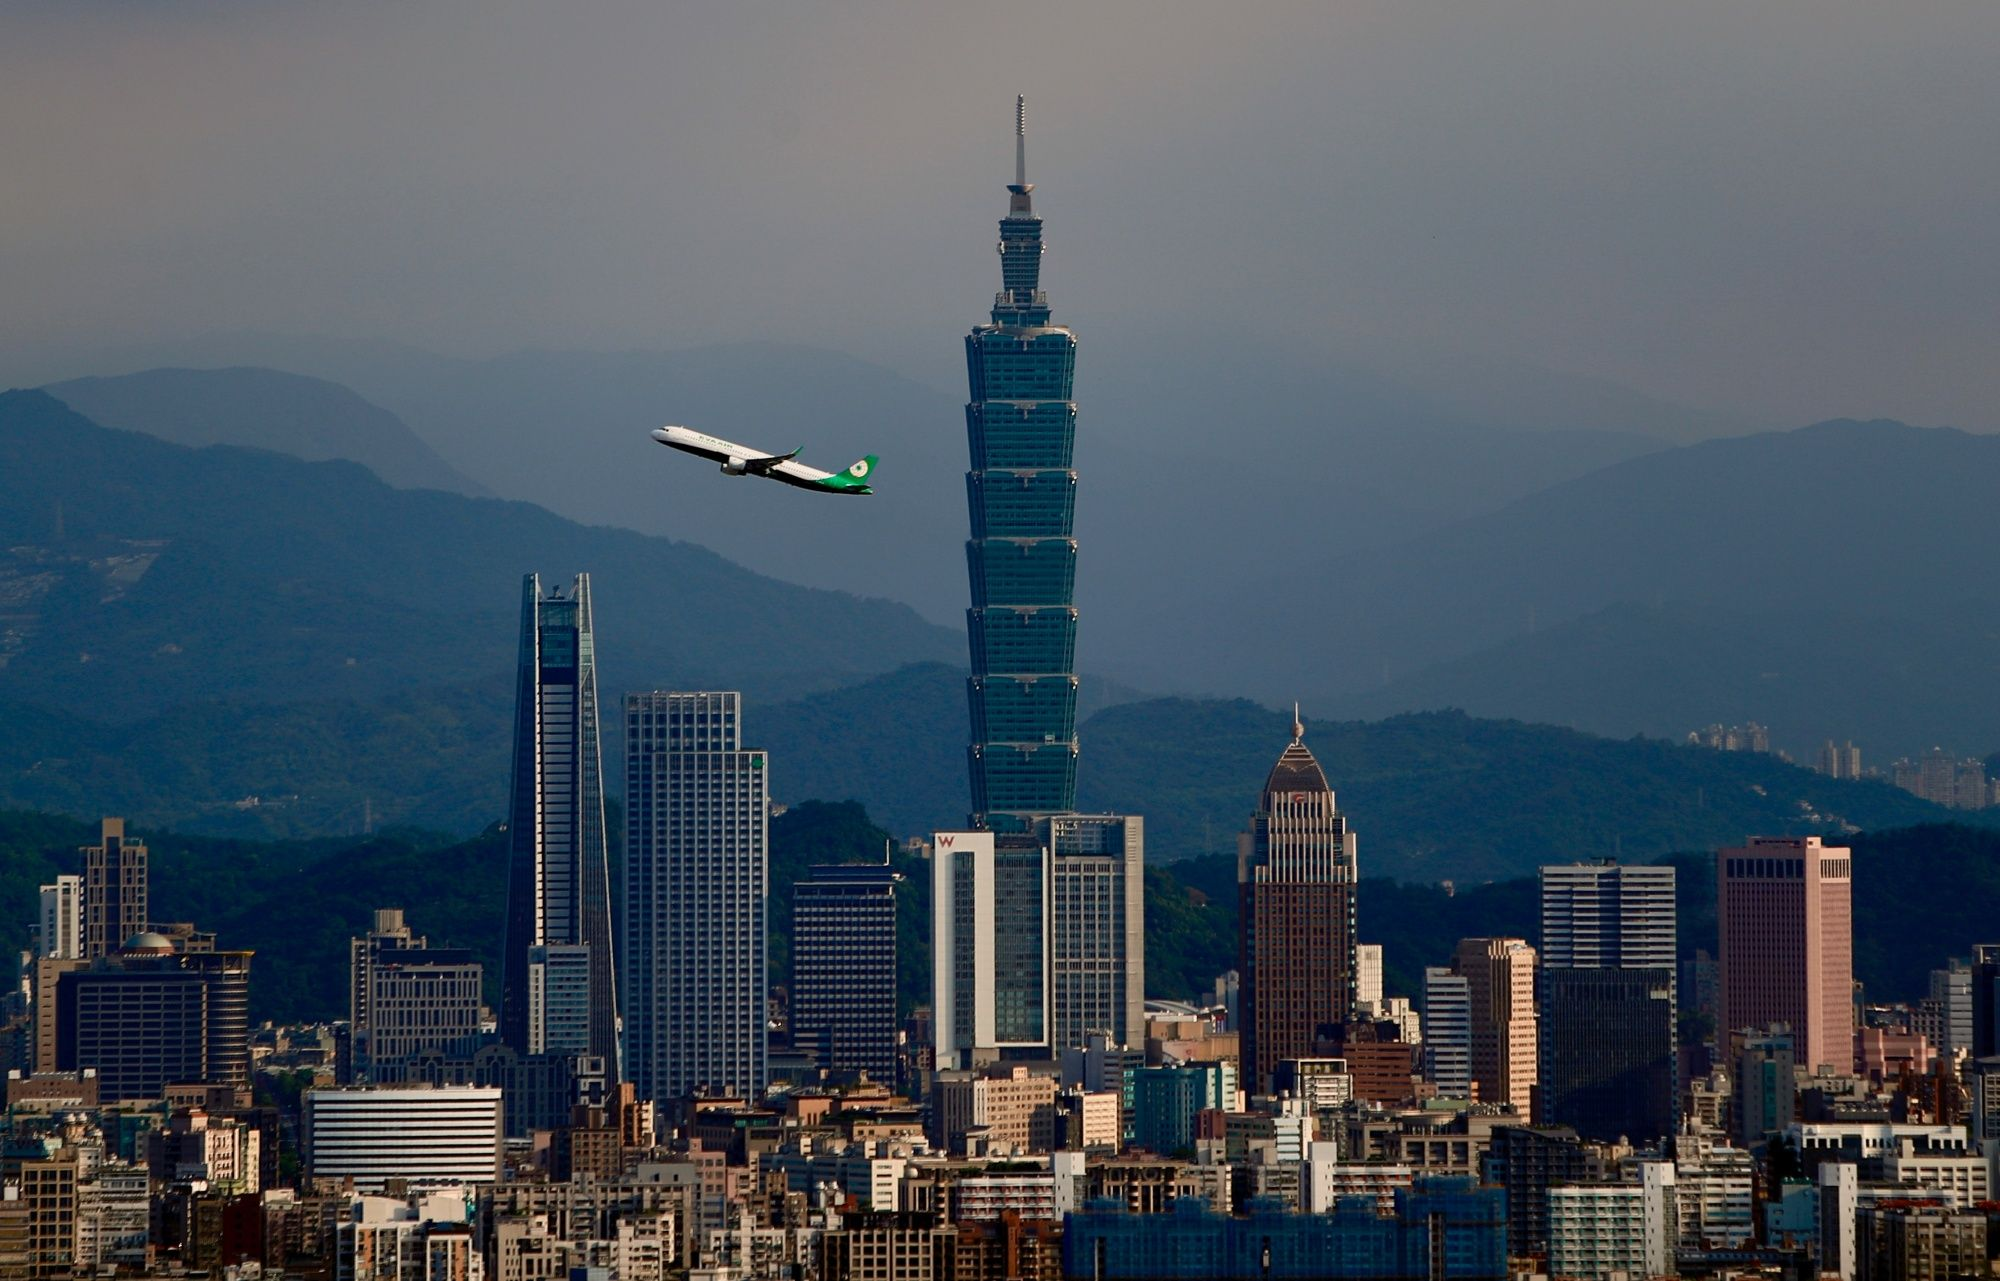 A domestic flight connecting Taipei City to Nangan Township departs from Songshan Airport and passes through in front of the Taipei 101 building, amid the spread of the Covid-19 pandemic, Taipei City, Taiwan, 12 July 2020.Unlike other countries like India and the United Kingdom where full and partial bans upon domestic flights have been in place , respectively since the pandemic started to spread, airlines for domestic travellers in Taiwan have not been affected as no suspension was stepped up by the govern